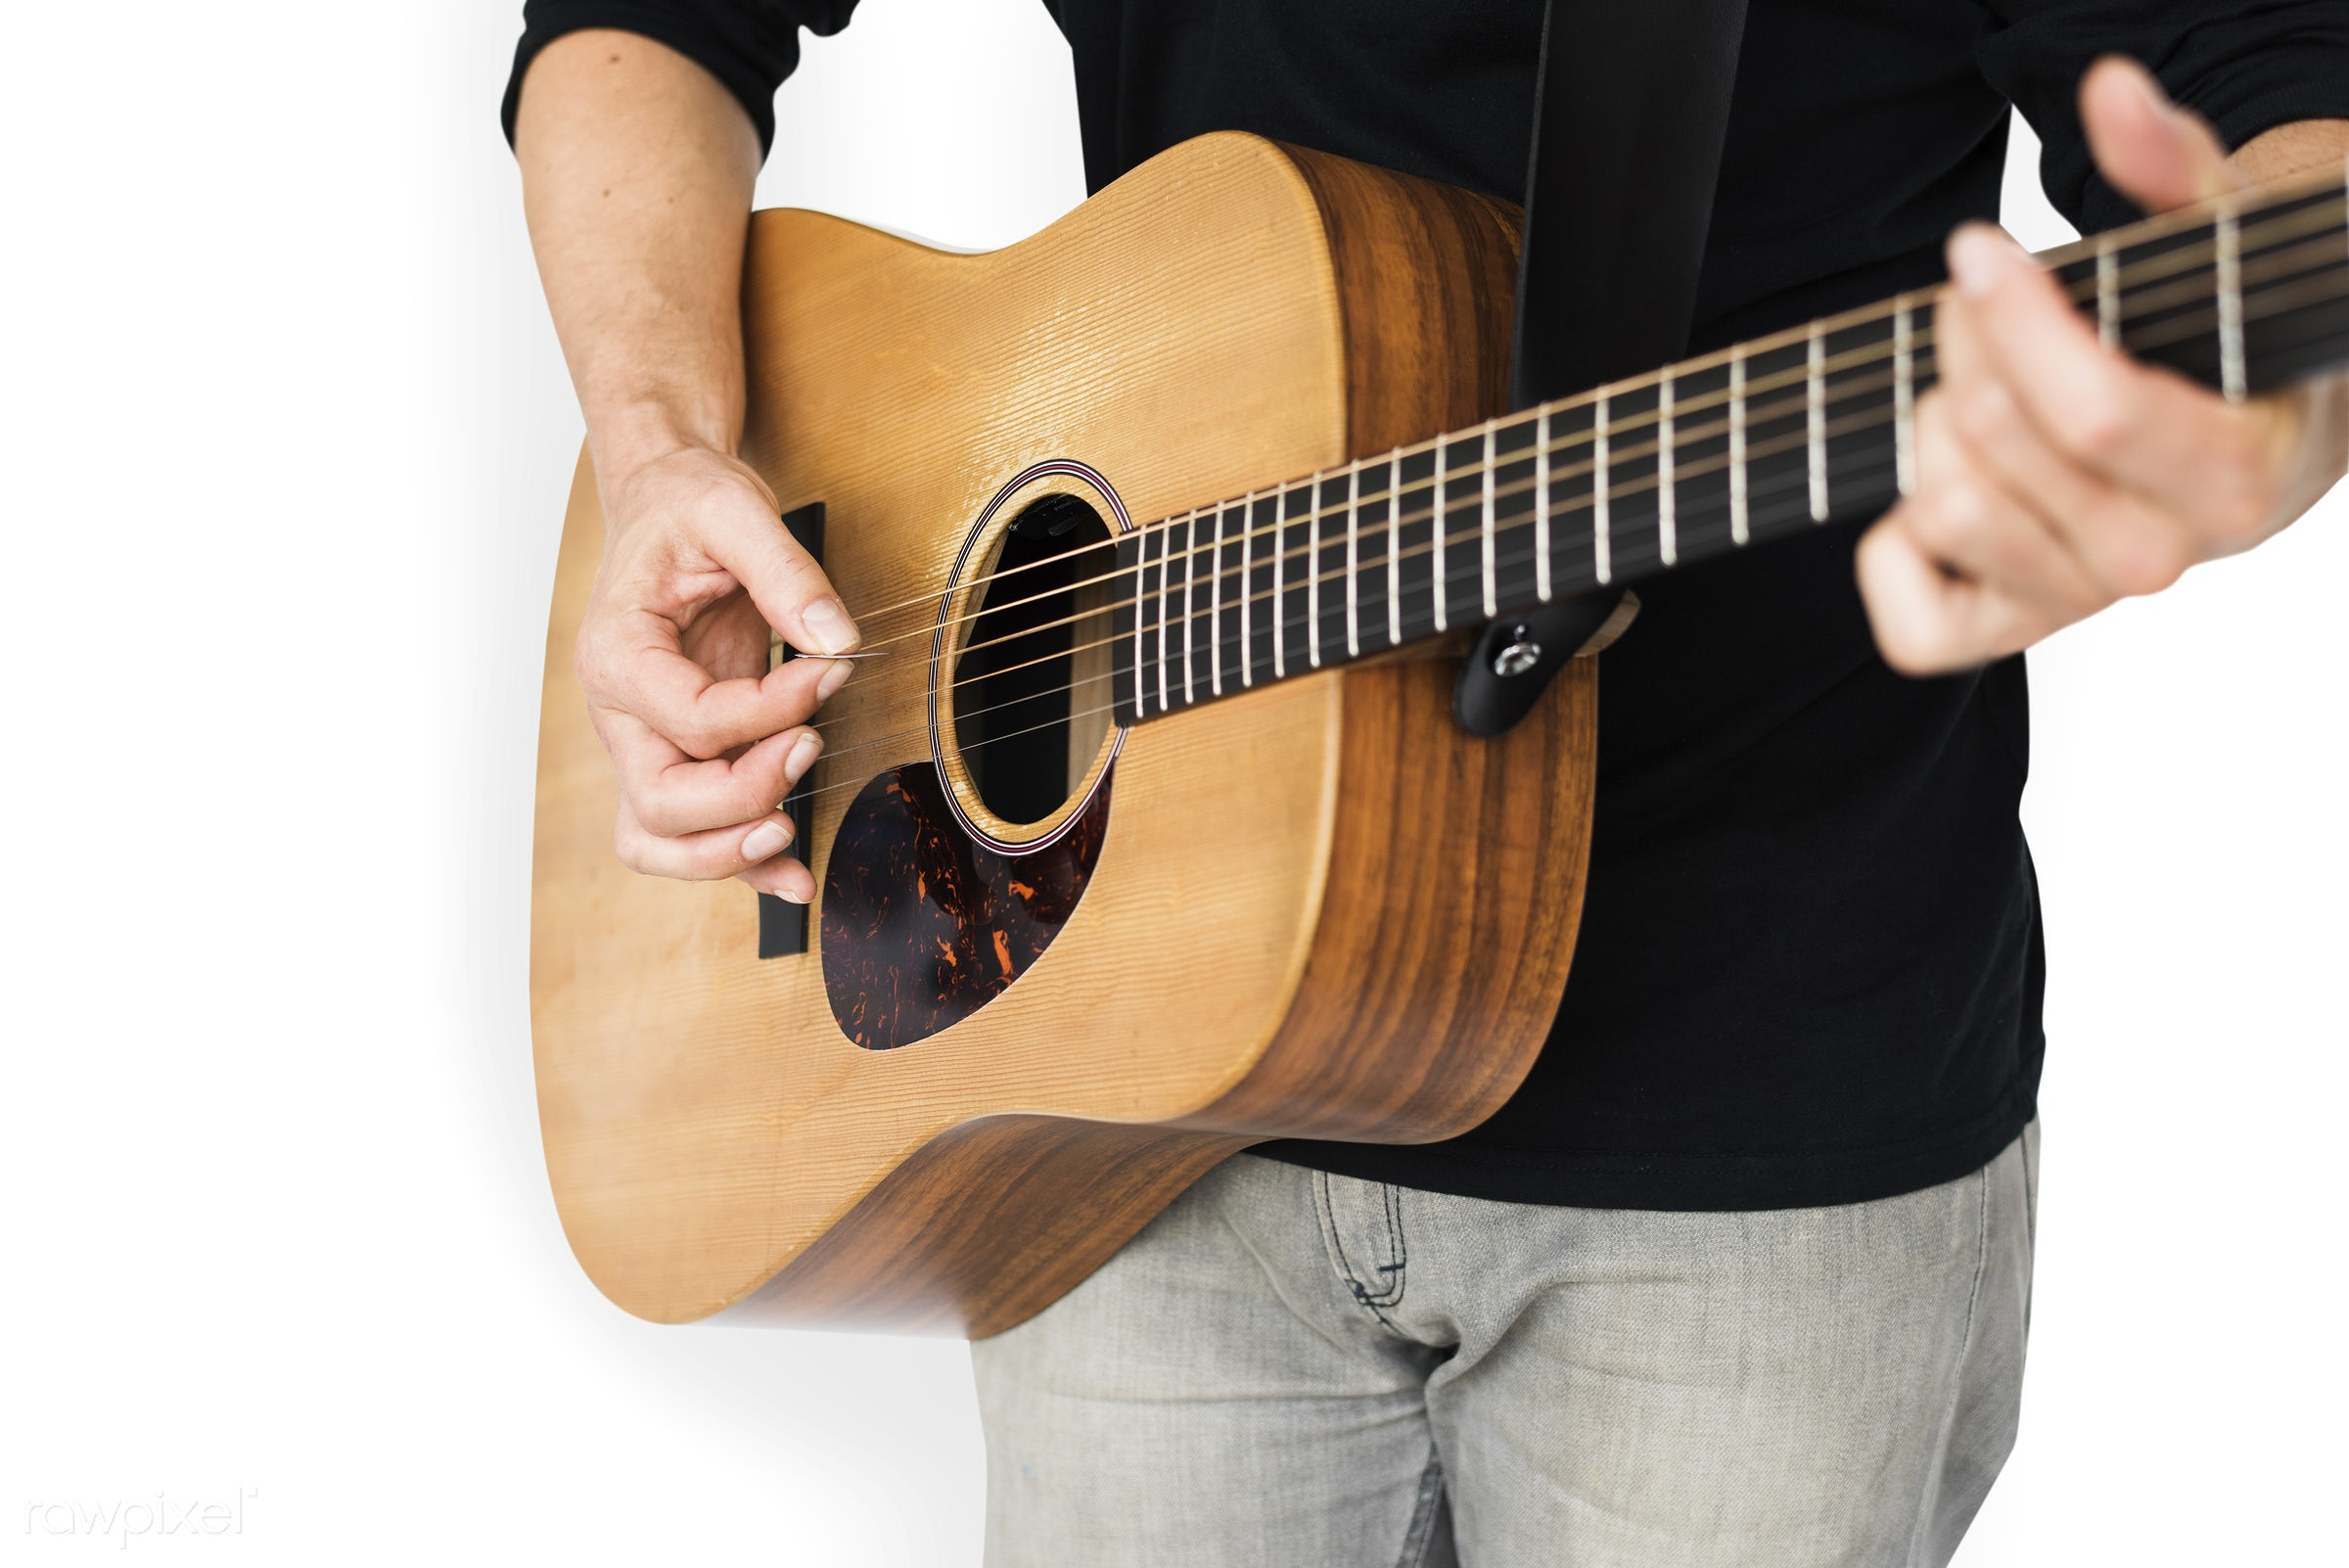 expression, studio, casual attire, person, making music, isolated on white, perform, people, music making, playing, solo,...